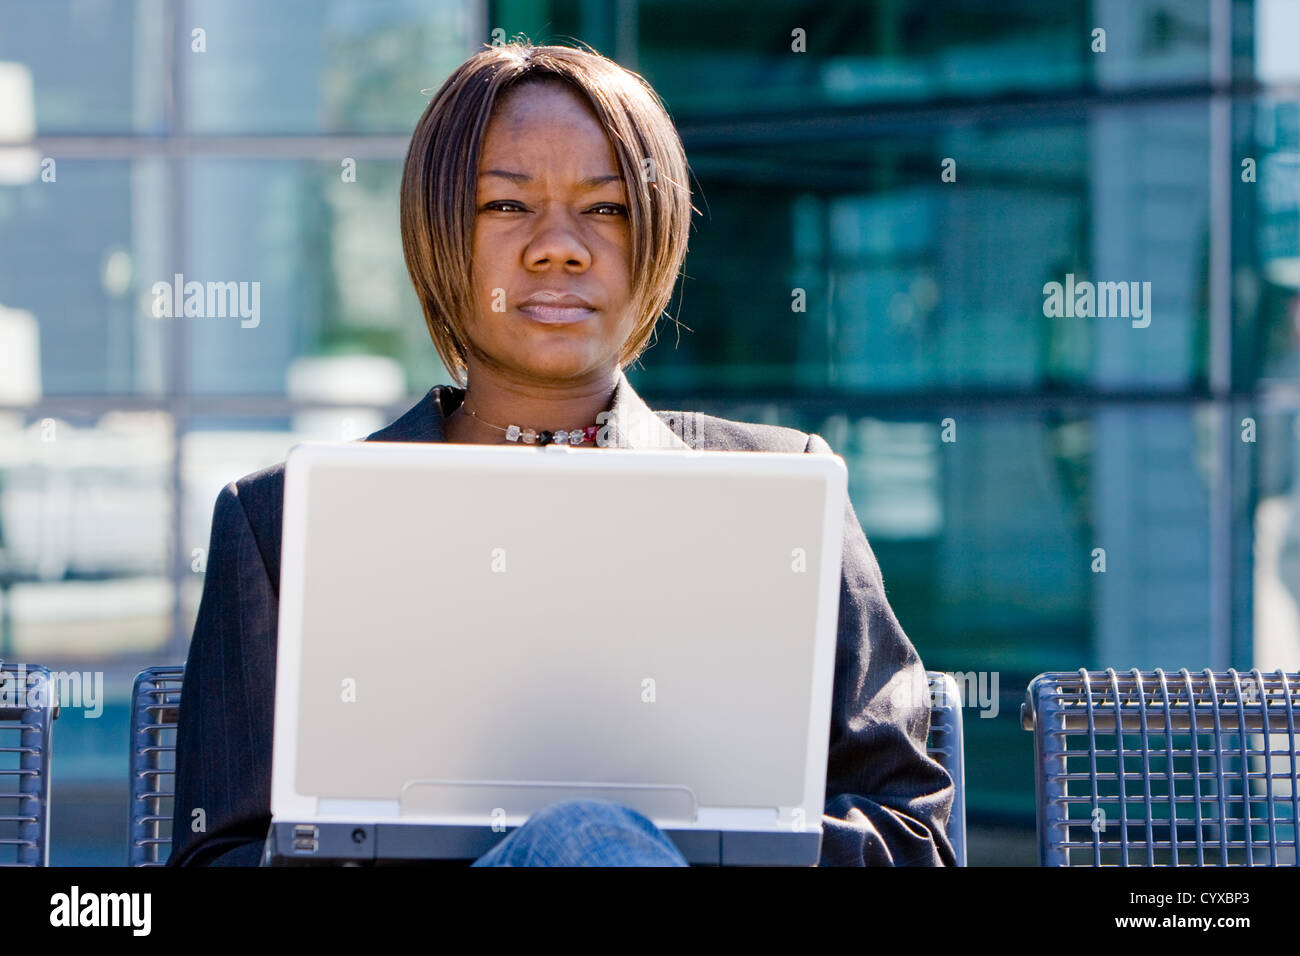 African american business woman with a computer notebook browsing outside an office building Stock Photo